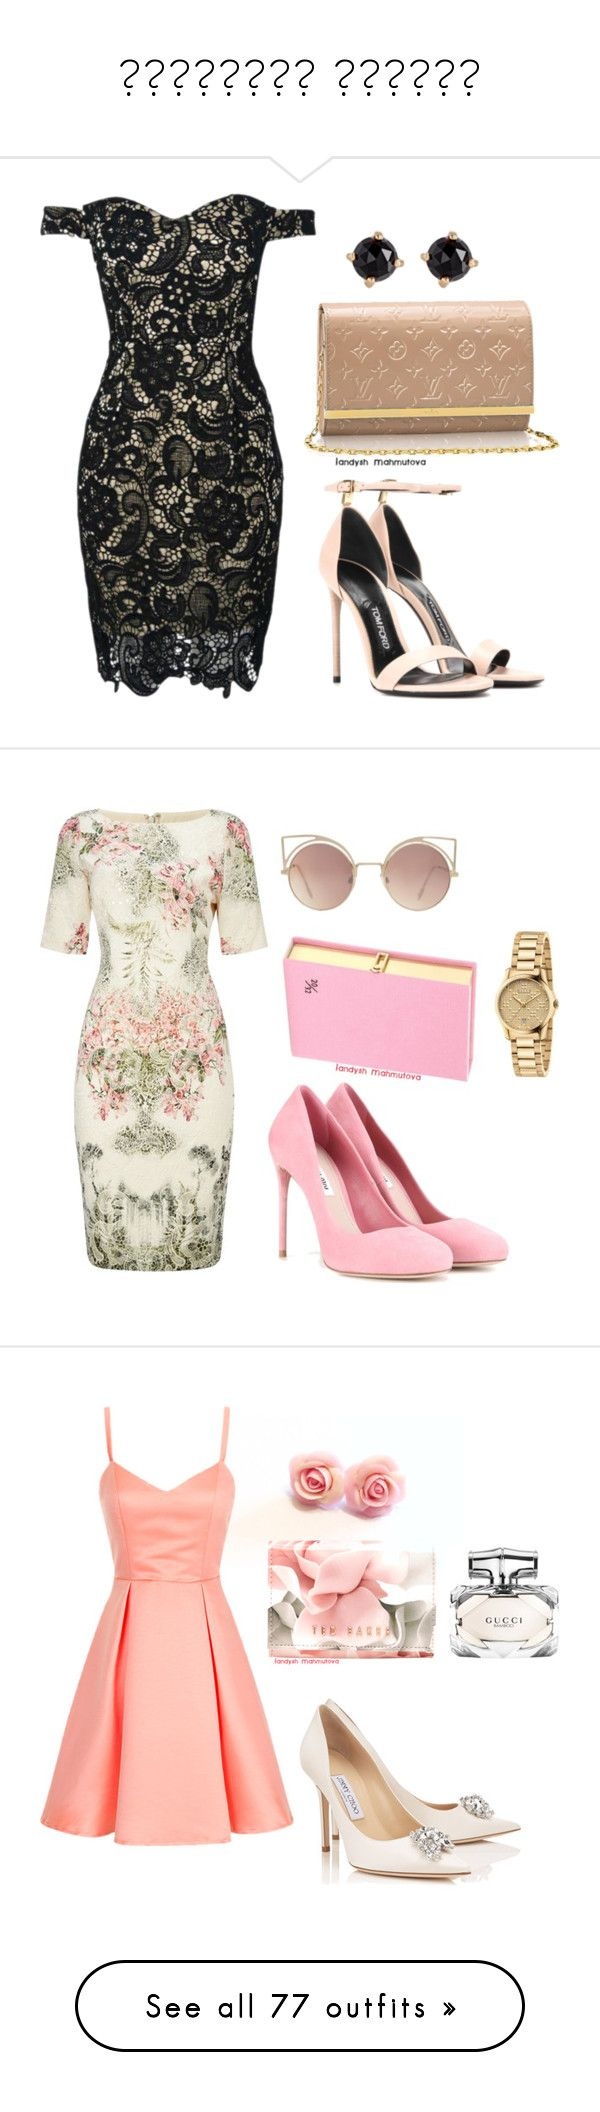 """Вечерние образы"" by landysh-1425 ❤ liked on Polyvore featuring WithChic, Tom Ford, Irene Neuwirth, Adrianna Papell, Olympia Le-Tan, Miu Miu, Gucci, MANGO, Ted Baker and Anna October"